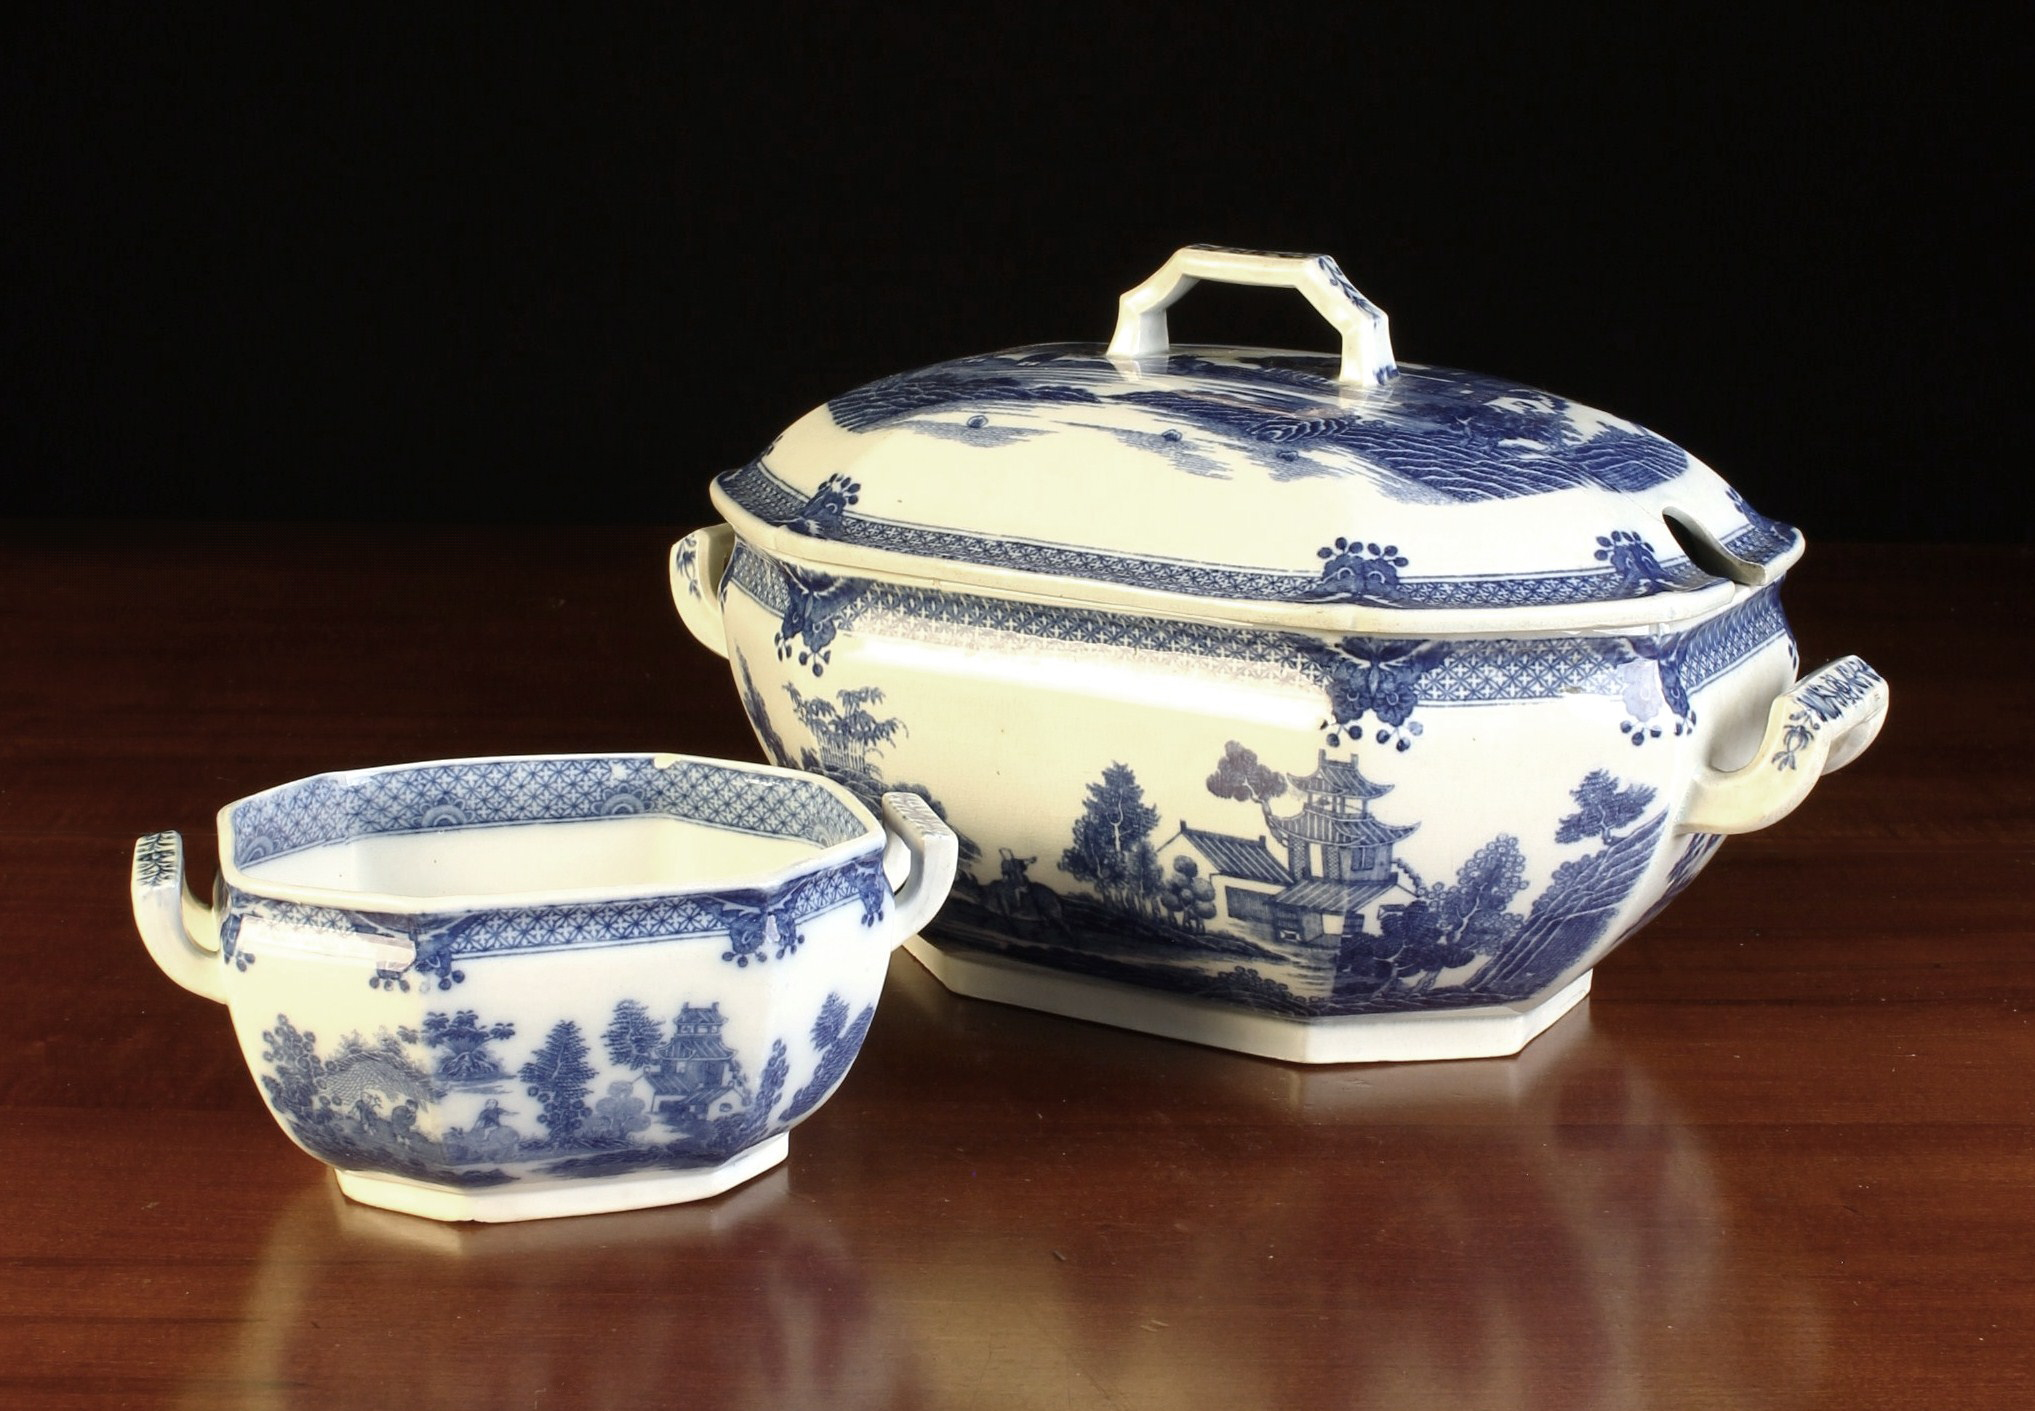 An Antique Blue & White Pearlware Soup Tureen & Cover, and a sauce/butter tureen (lacking lid).